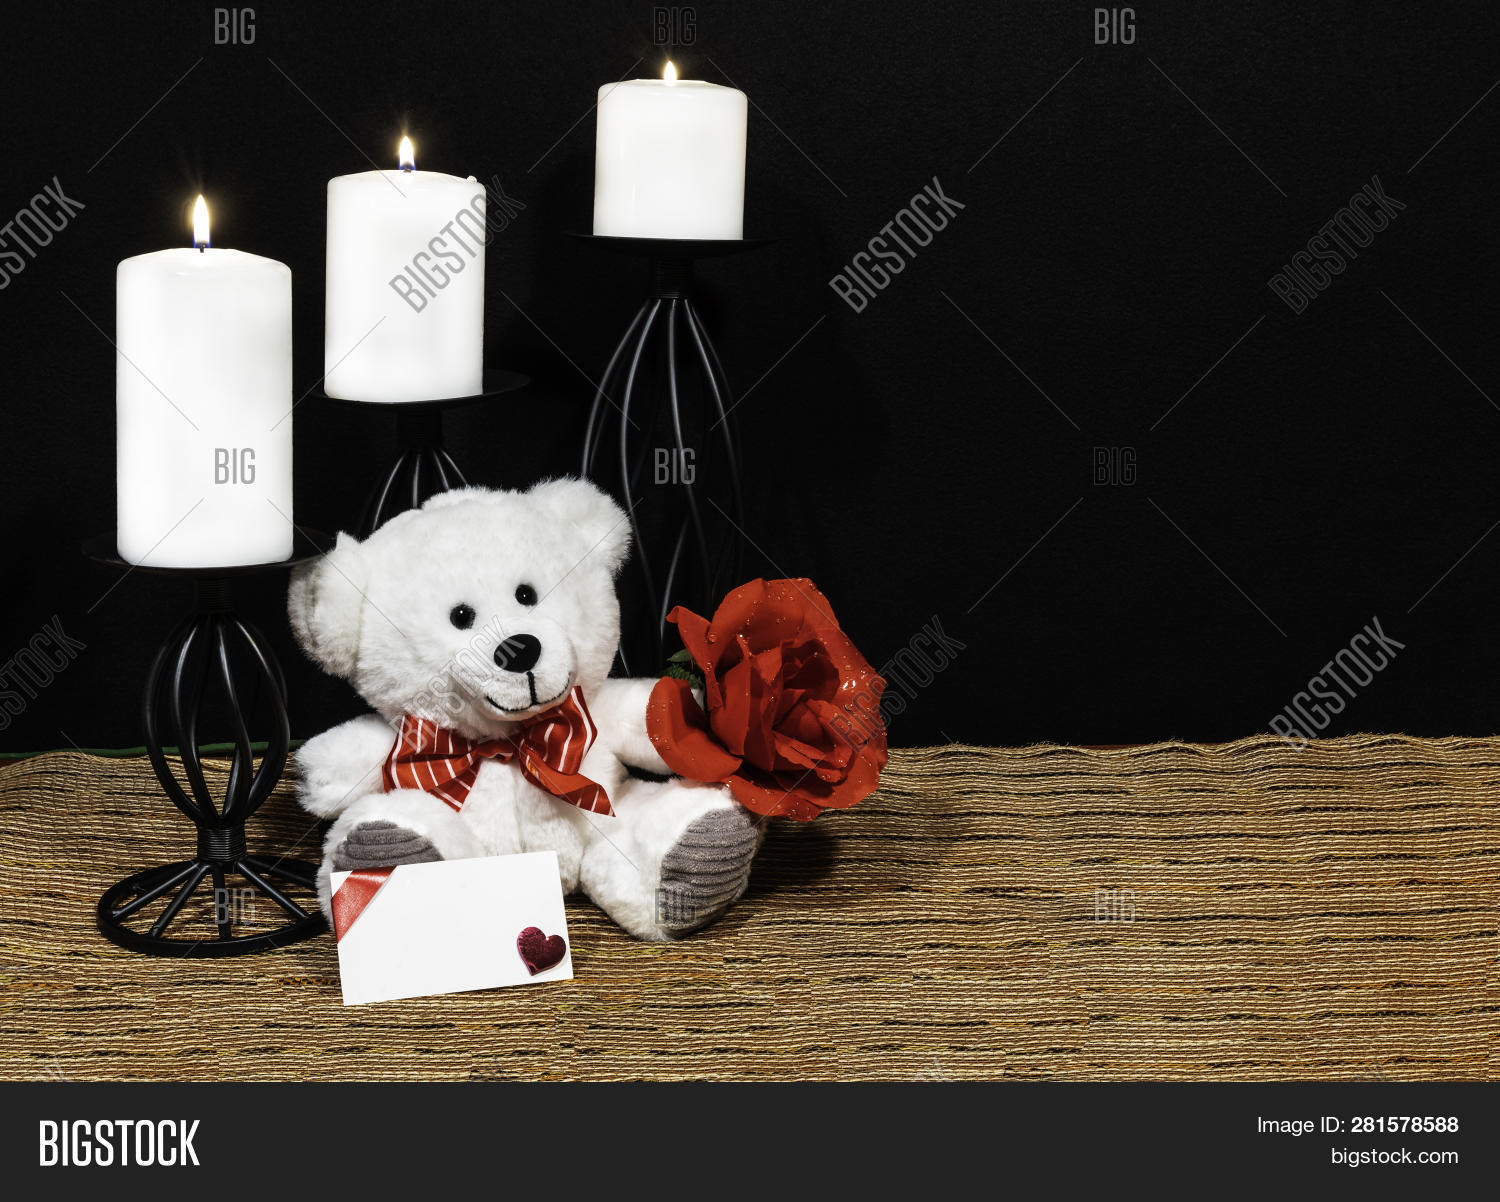 Cudlely Teddy Bear Red Image Photo Free Trial Bigstock